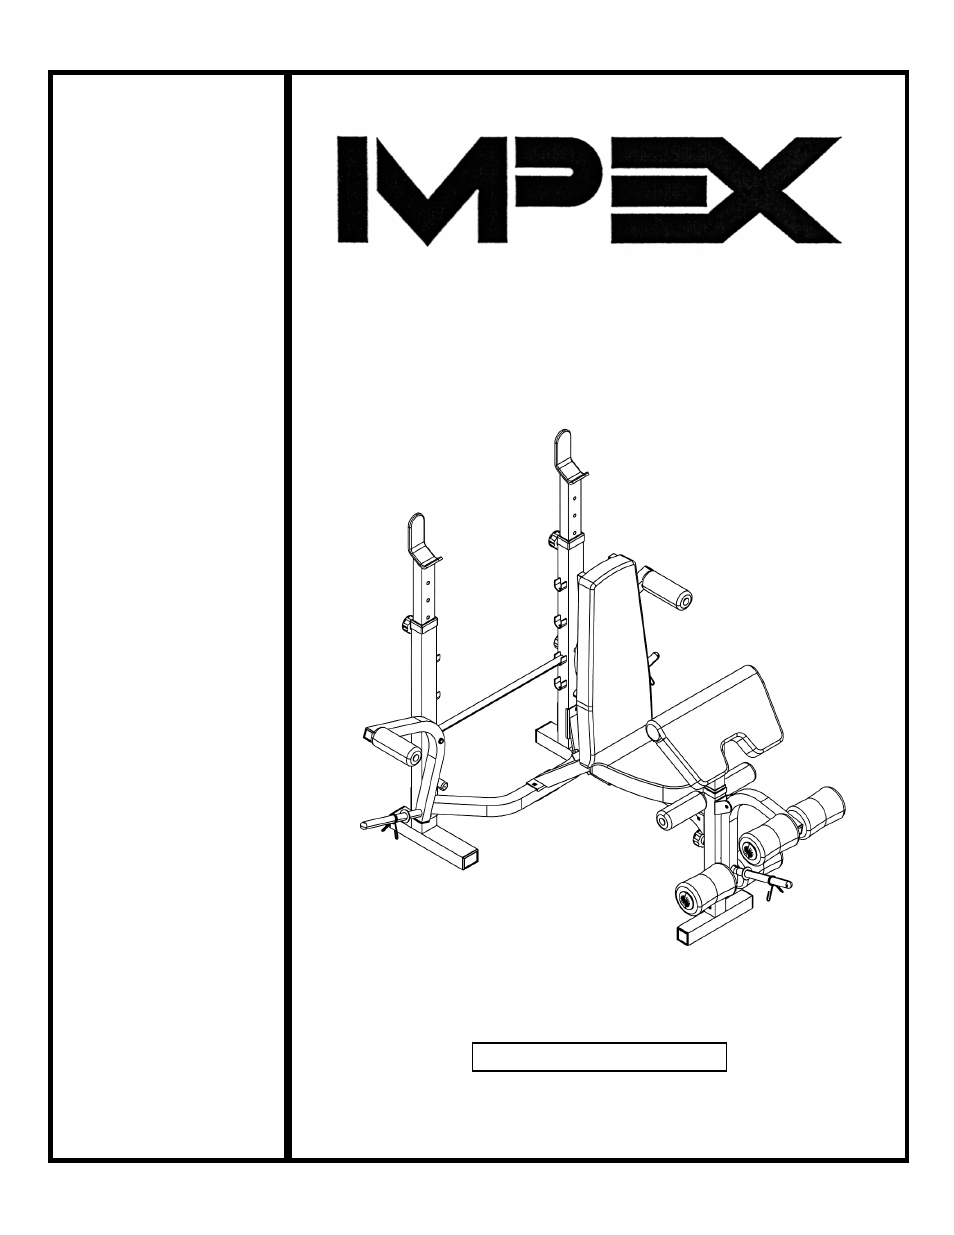 Opener Assembly Diagram U0026 Parts List For Model Manual Guide